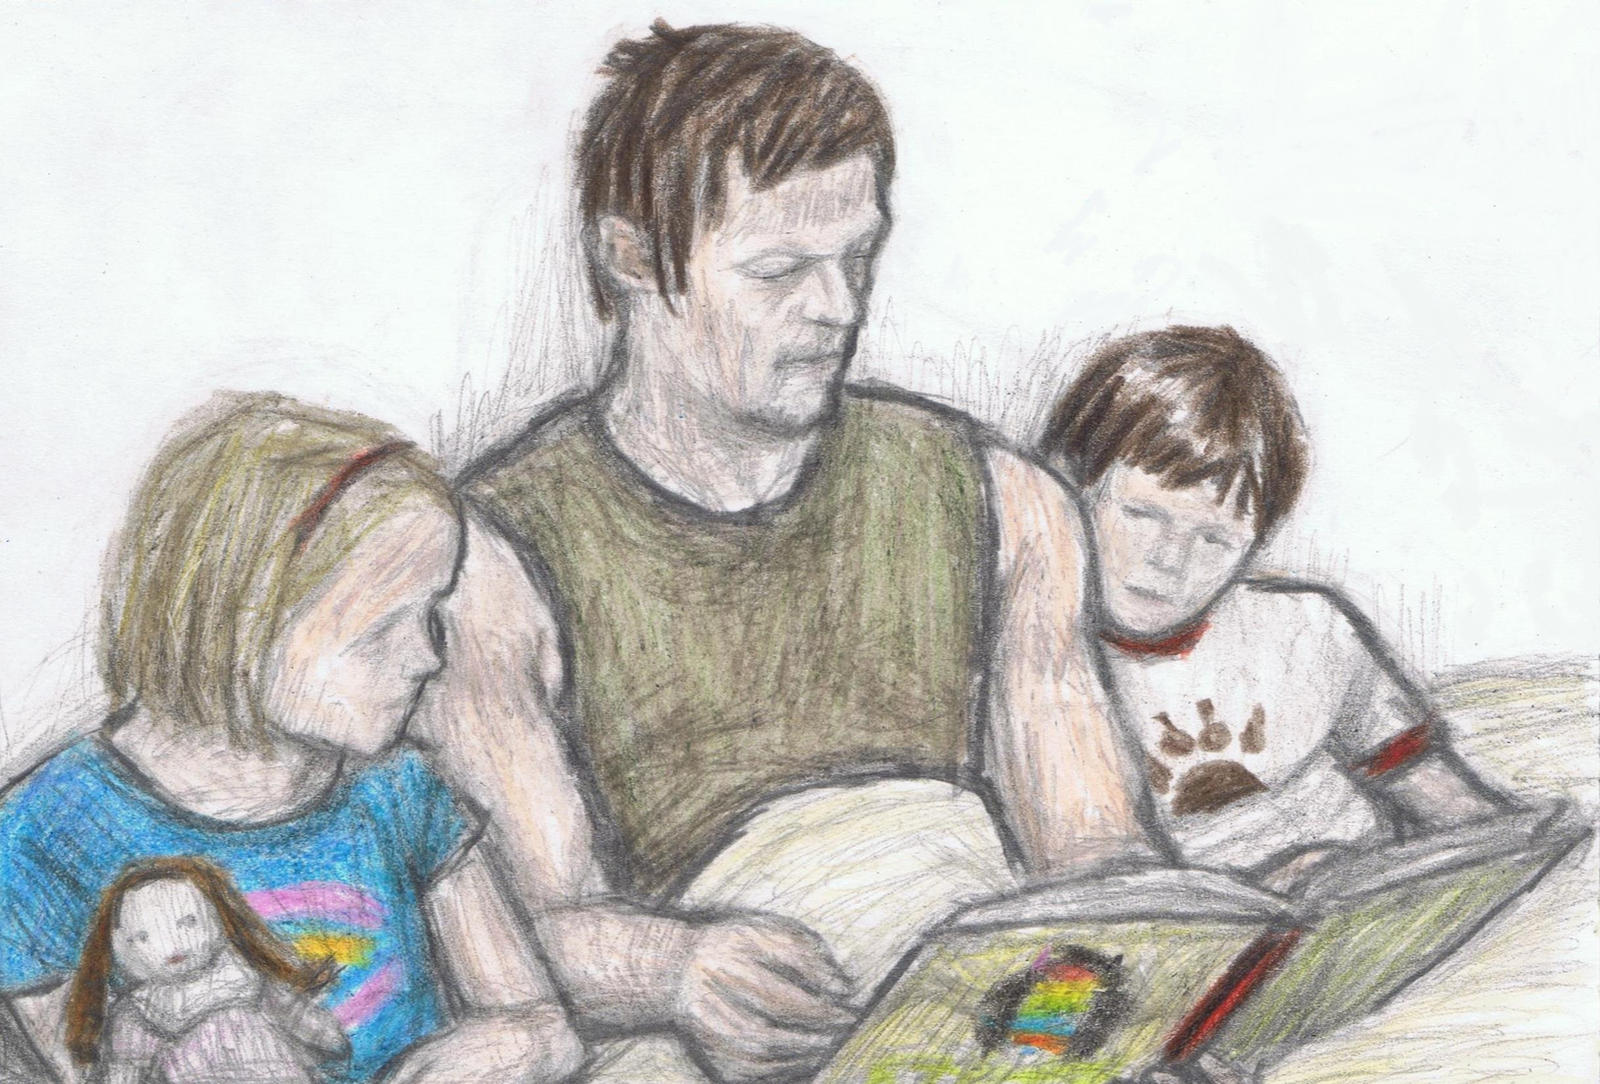 Daryl Dixon's bedtime story by gagambo